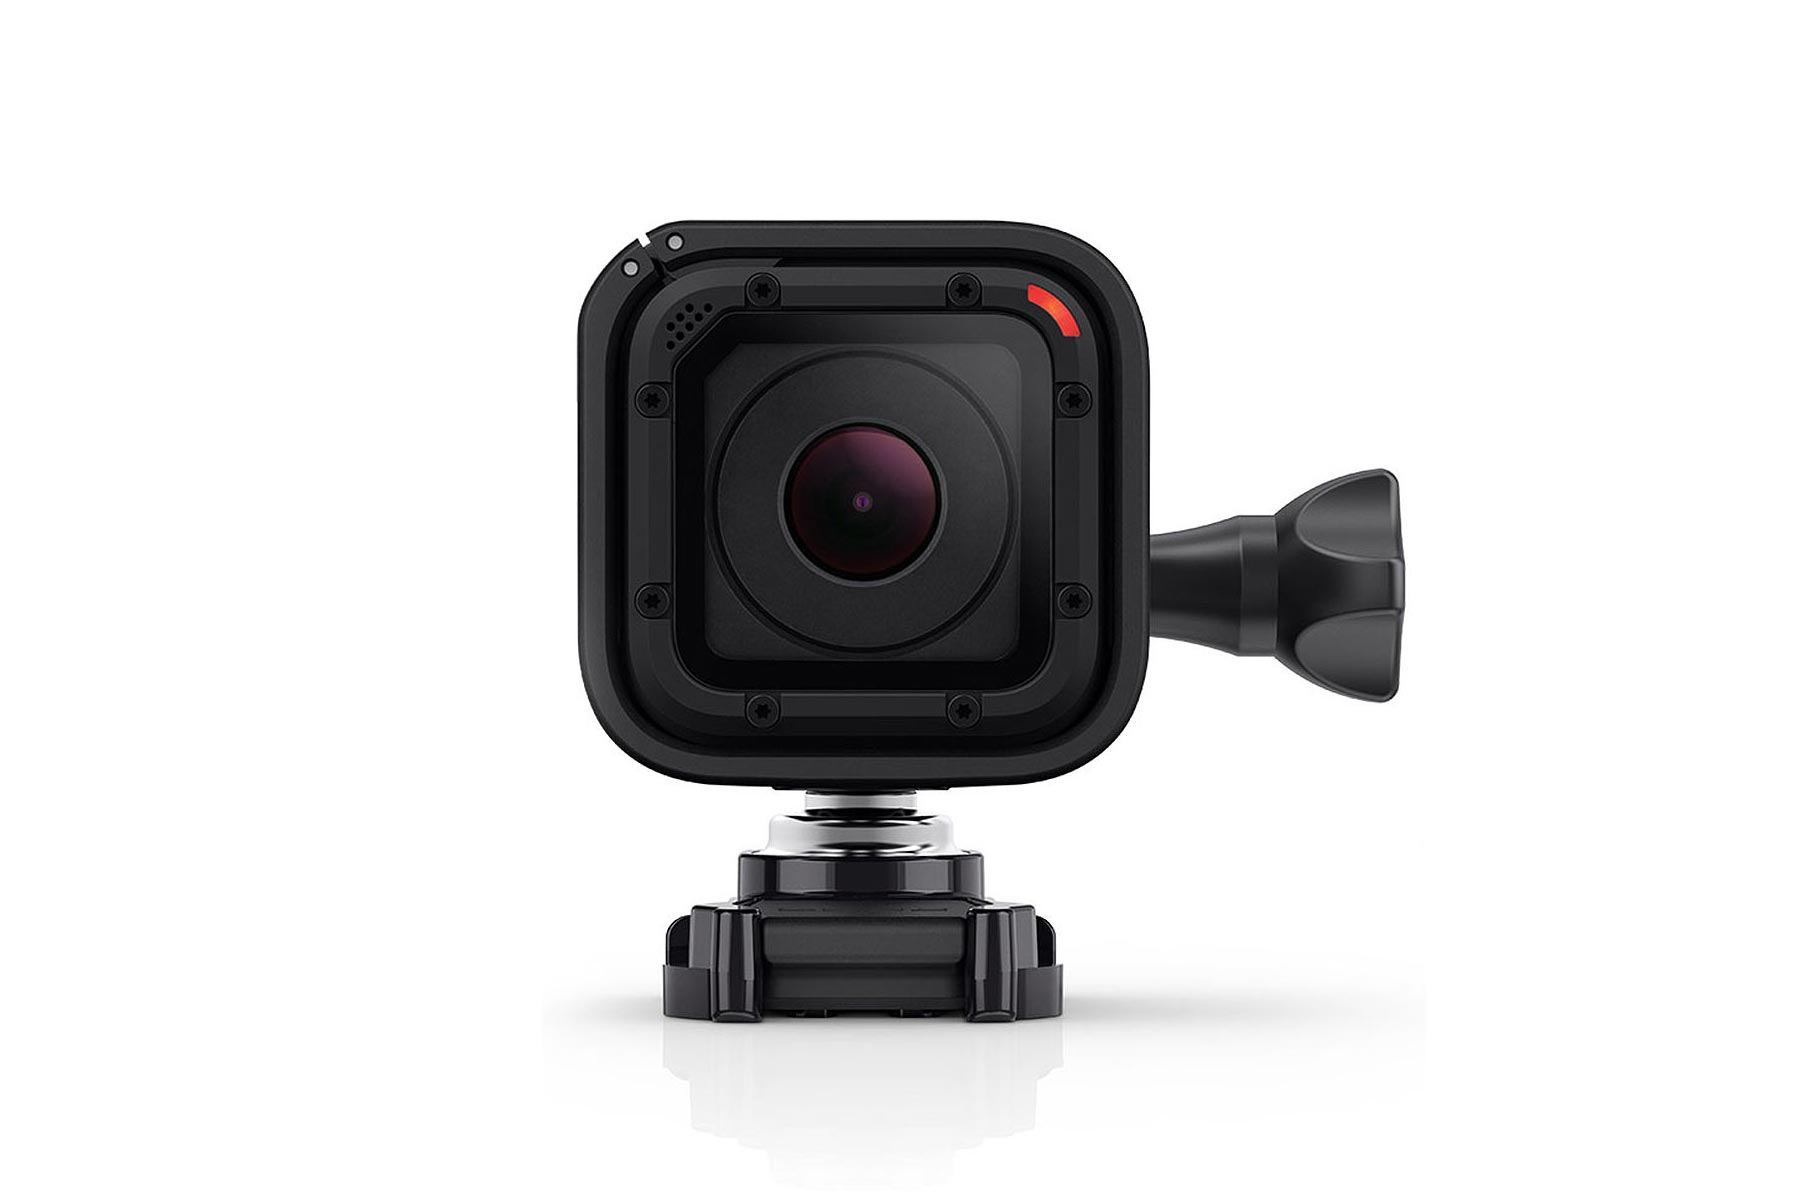 gopro hero4 session a smaller gopro video camera. Black Bedroom Furniture Sets. Home Design Ideas